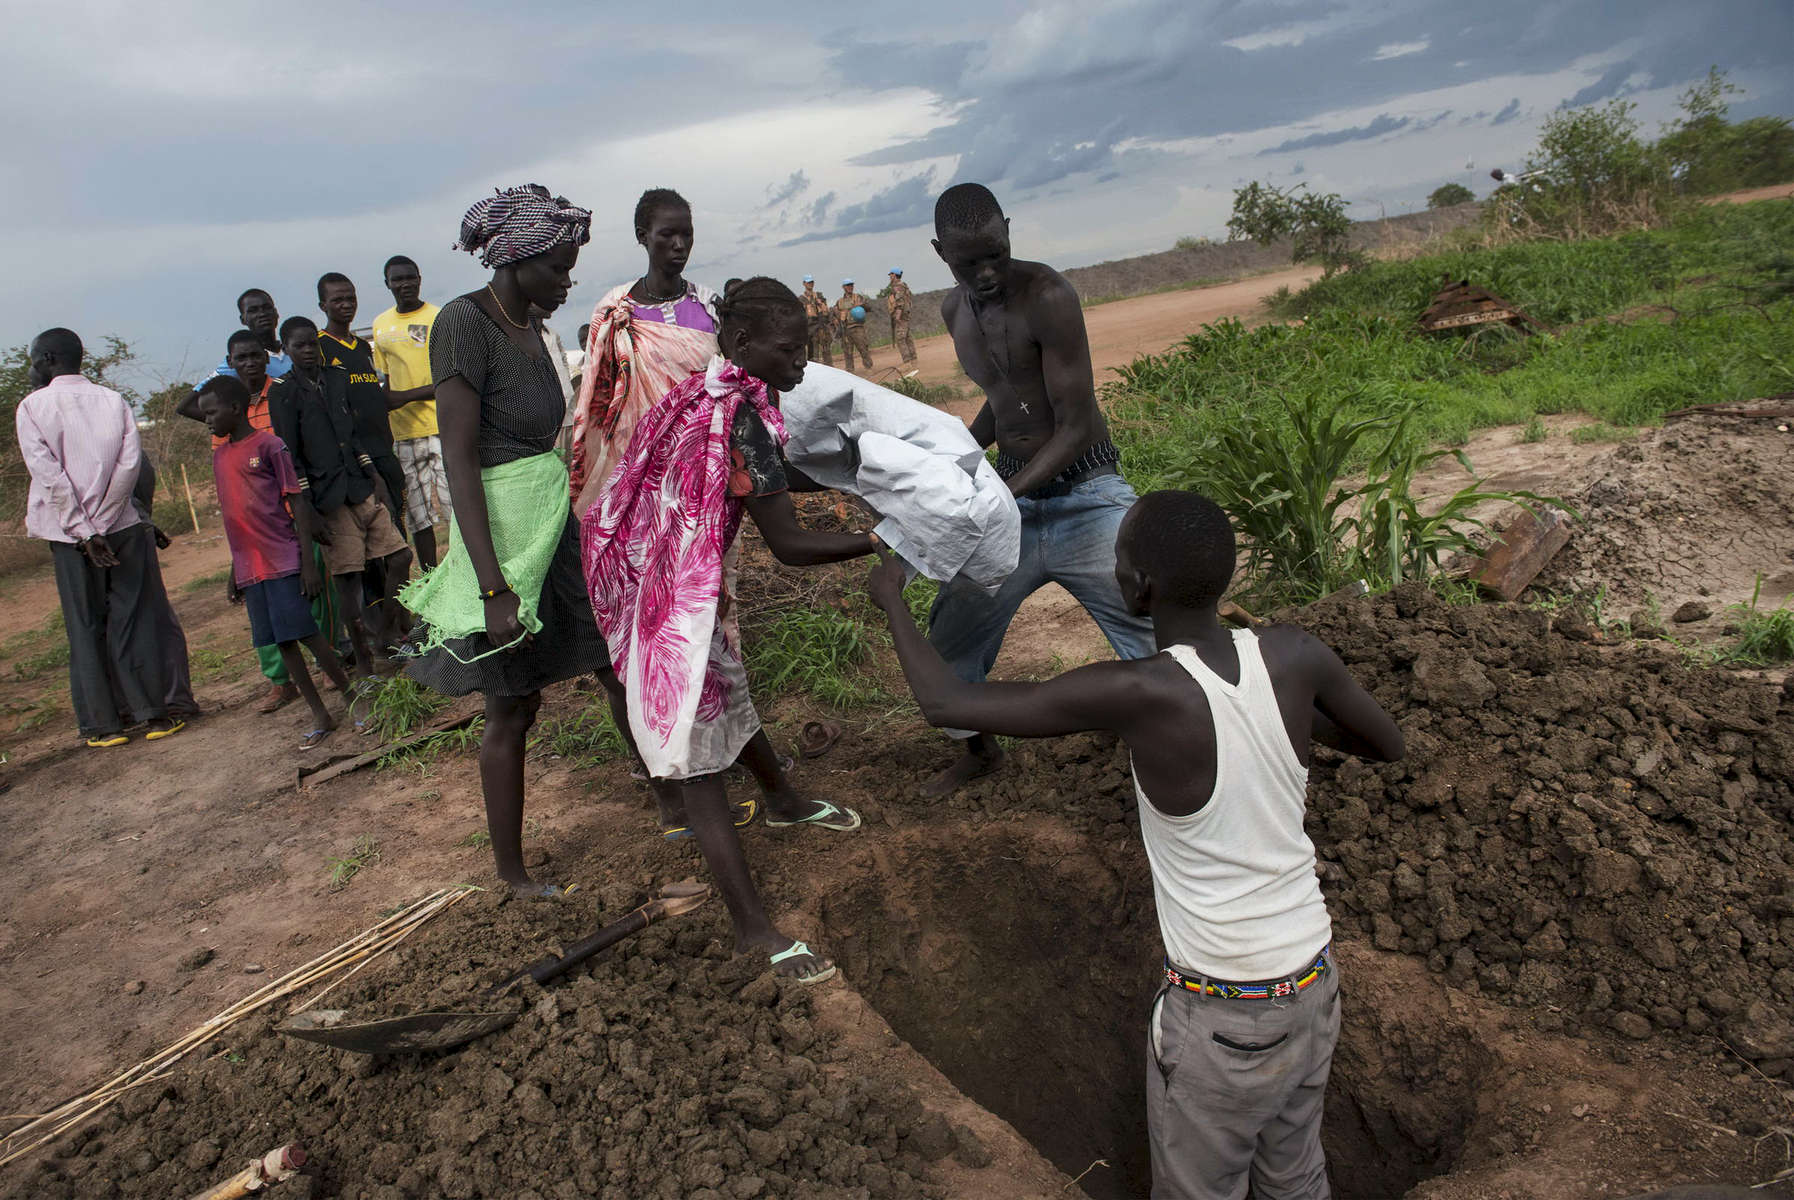 Relatives of Nyapes Lach, 4, carry her body to a freshly dug grave after she was shot in the head by crossfire while sitting in the camp for displaced at the United Nations Mission in South Sudan as fighting raged between government and opposition forces in Bentiu, South Sudan, May 4, 2014.  Bentiu has changed hands between government and opposition control several times since the civil war began in December, and has been the scene of ethnic massacres where hundreds, if not thousands, have been killed in the past months, pushing over 20,000 into a camp for displaced inside the UNMISS camp outside the town.  One million Southern Sudanese have been displaced from their homes as the civil war rages in the country, pitting ethnic Nu'er against Dinka.  (Credit: Lynsey Addario)